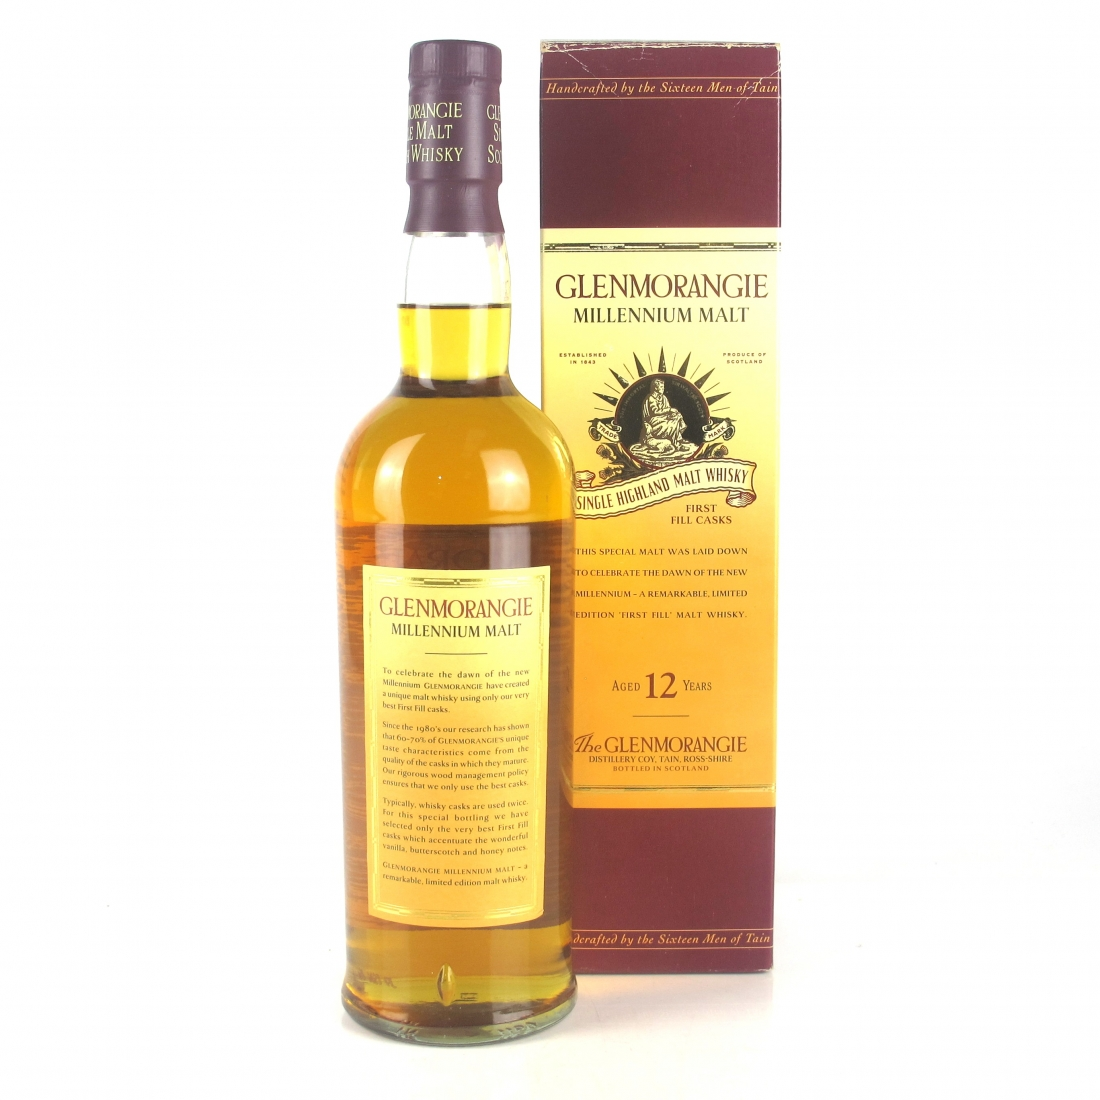 Glenmorangie 12 Year Old Millennium Limited Edition